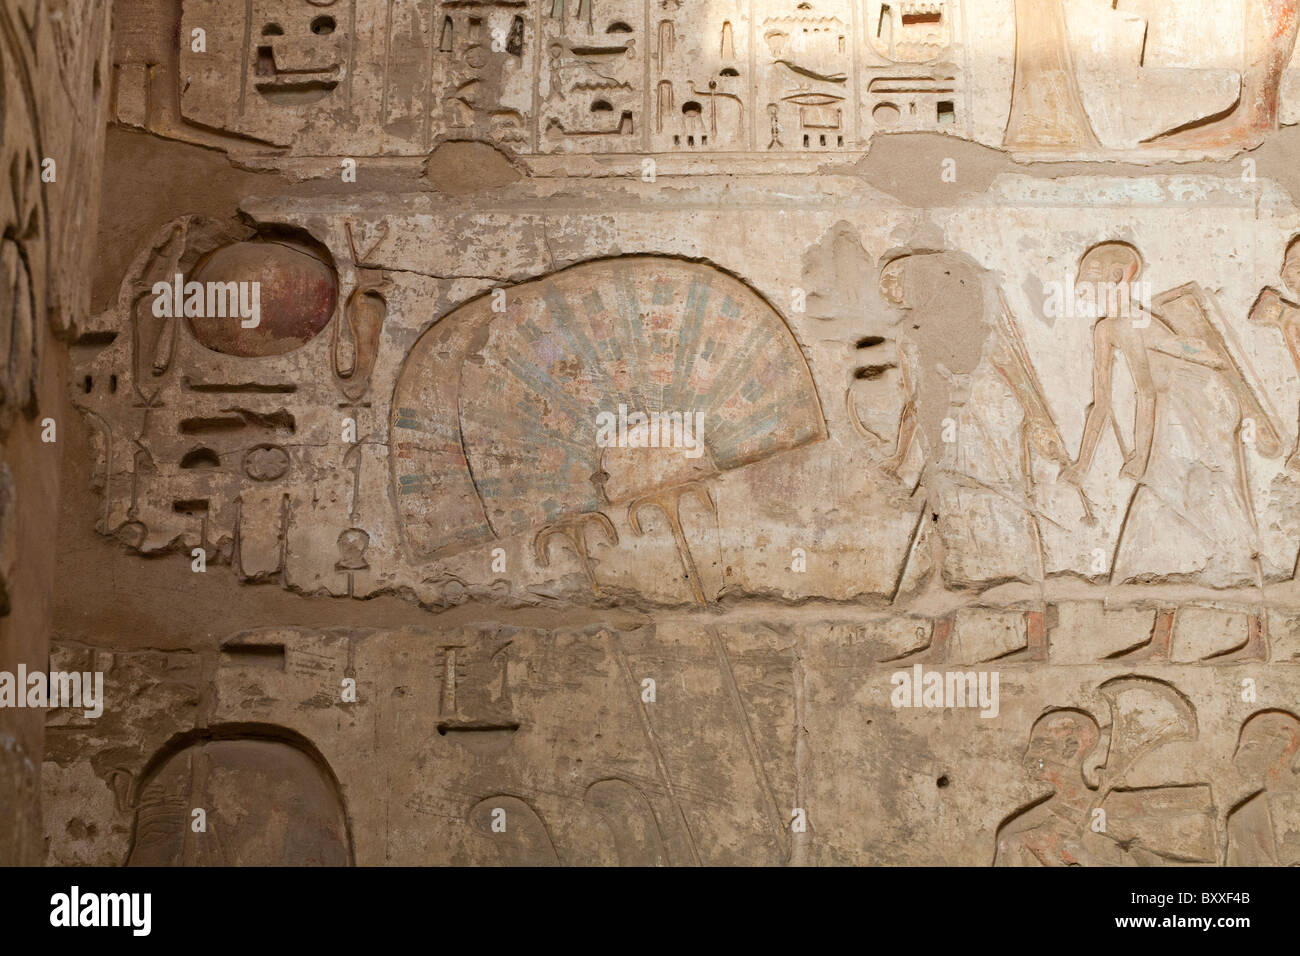 Relief of Fan on Portico wall at Medinet Habu , Mortuary Temple of Ramesses III, West bank of Nile, Luxor, Egypt - Stock Image